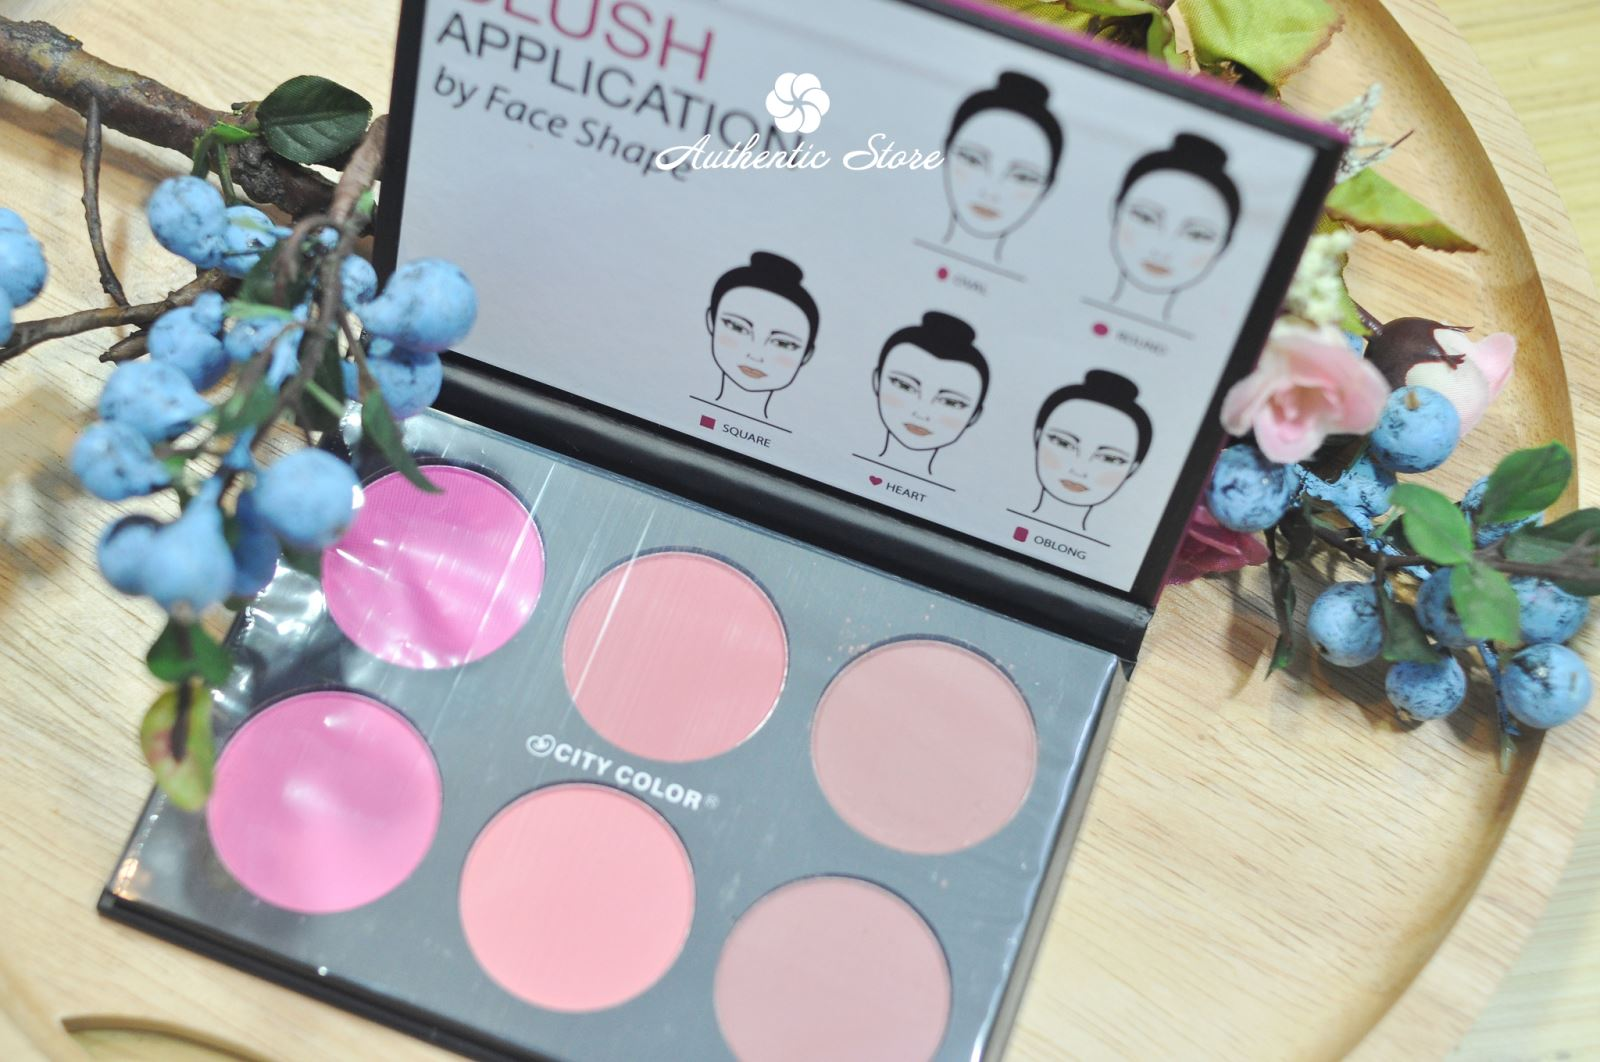 bảng phấn má city color glow pro blush palette